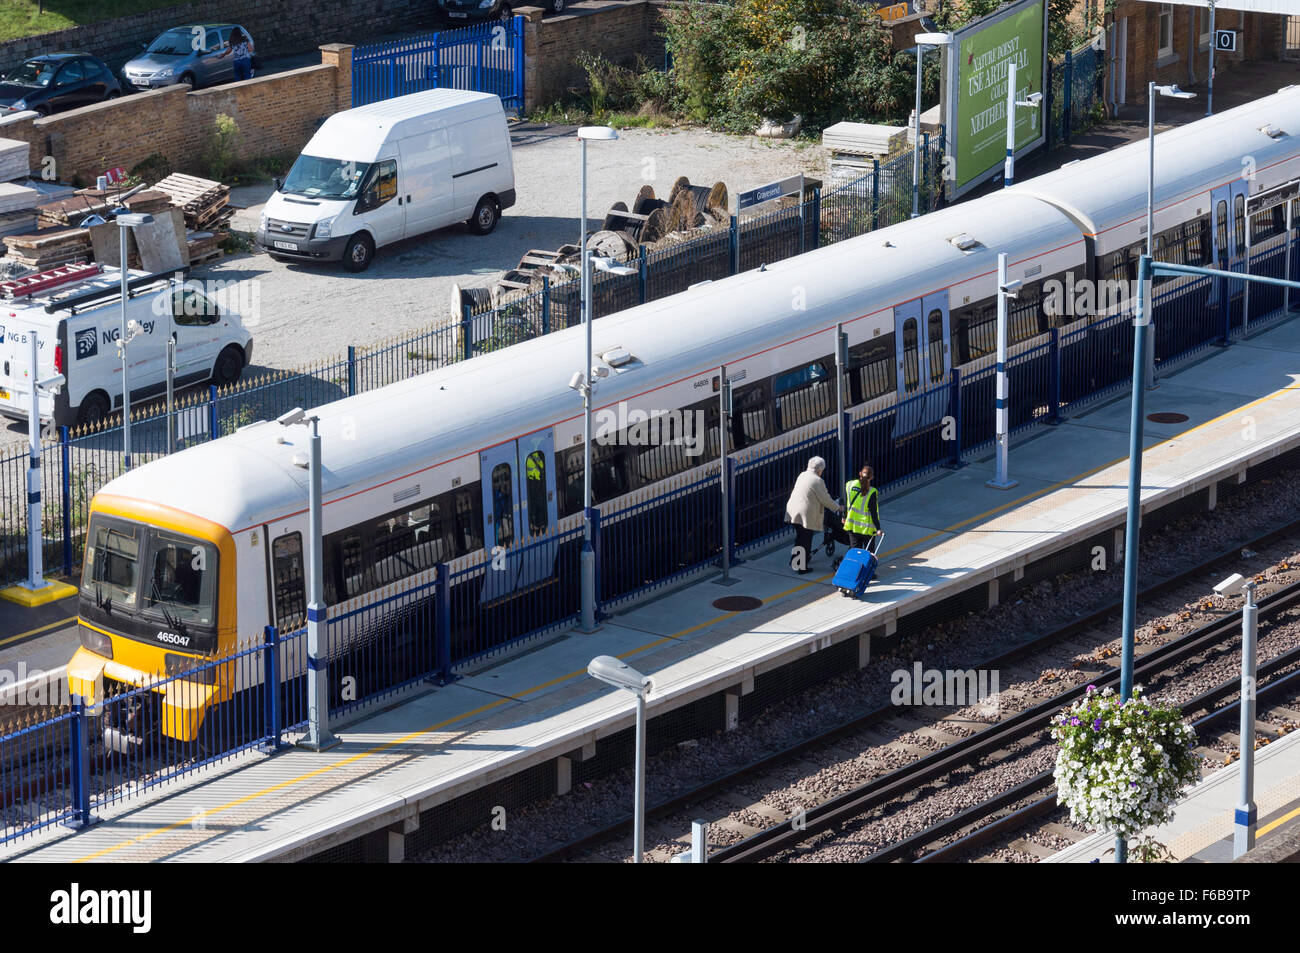 Train at platform, Gravesend Railway Station, Gravesend, Kent, England, United Kingdom Stock Photo